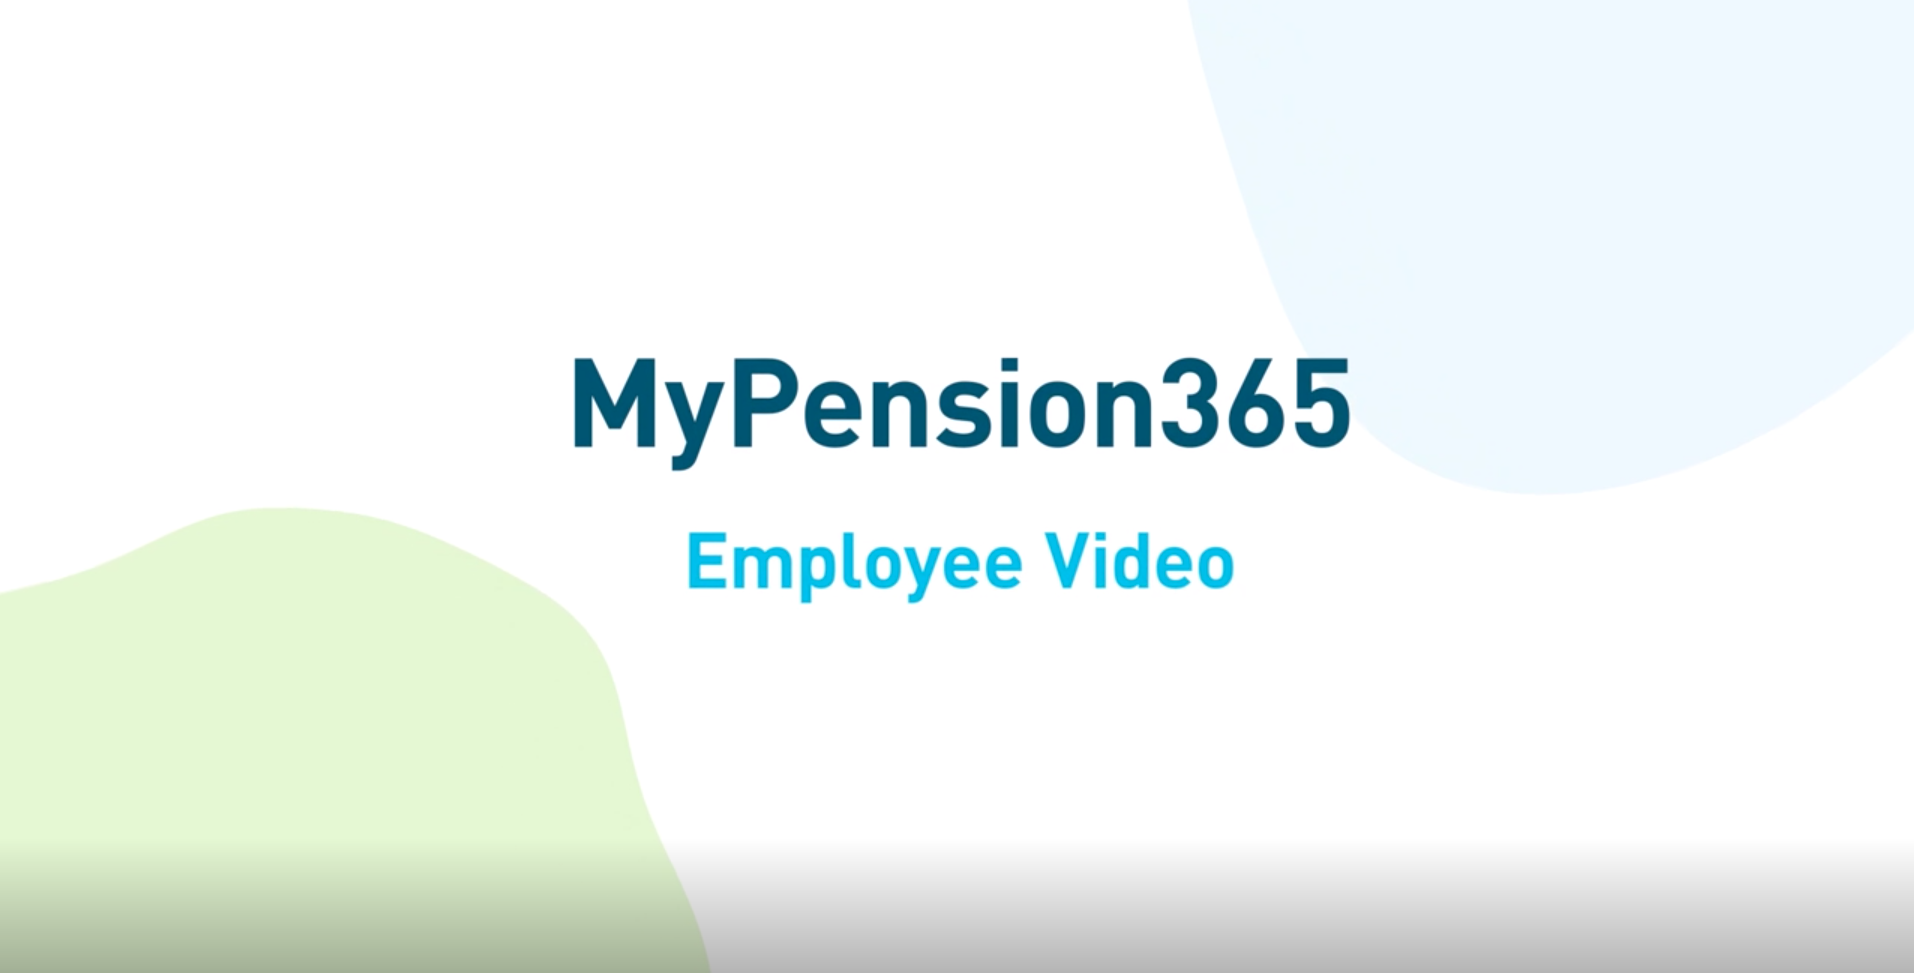 MyPension365